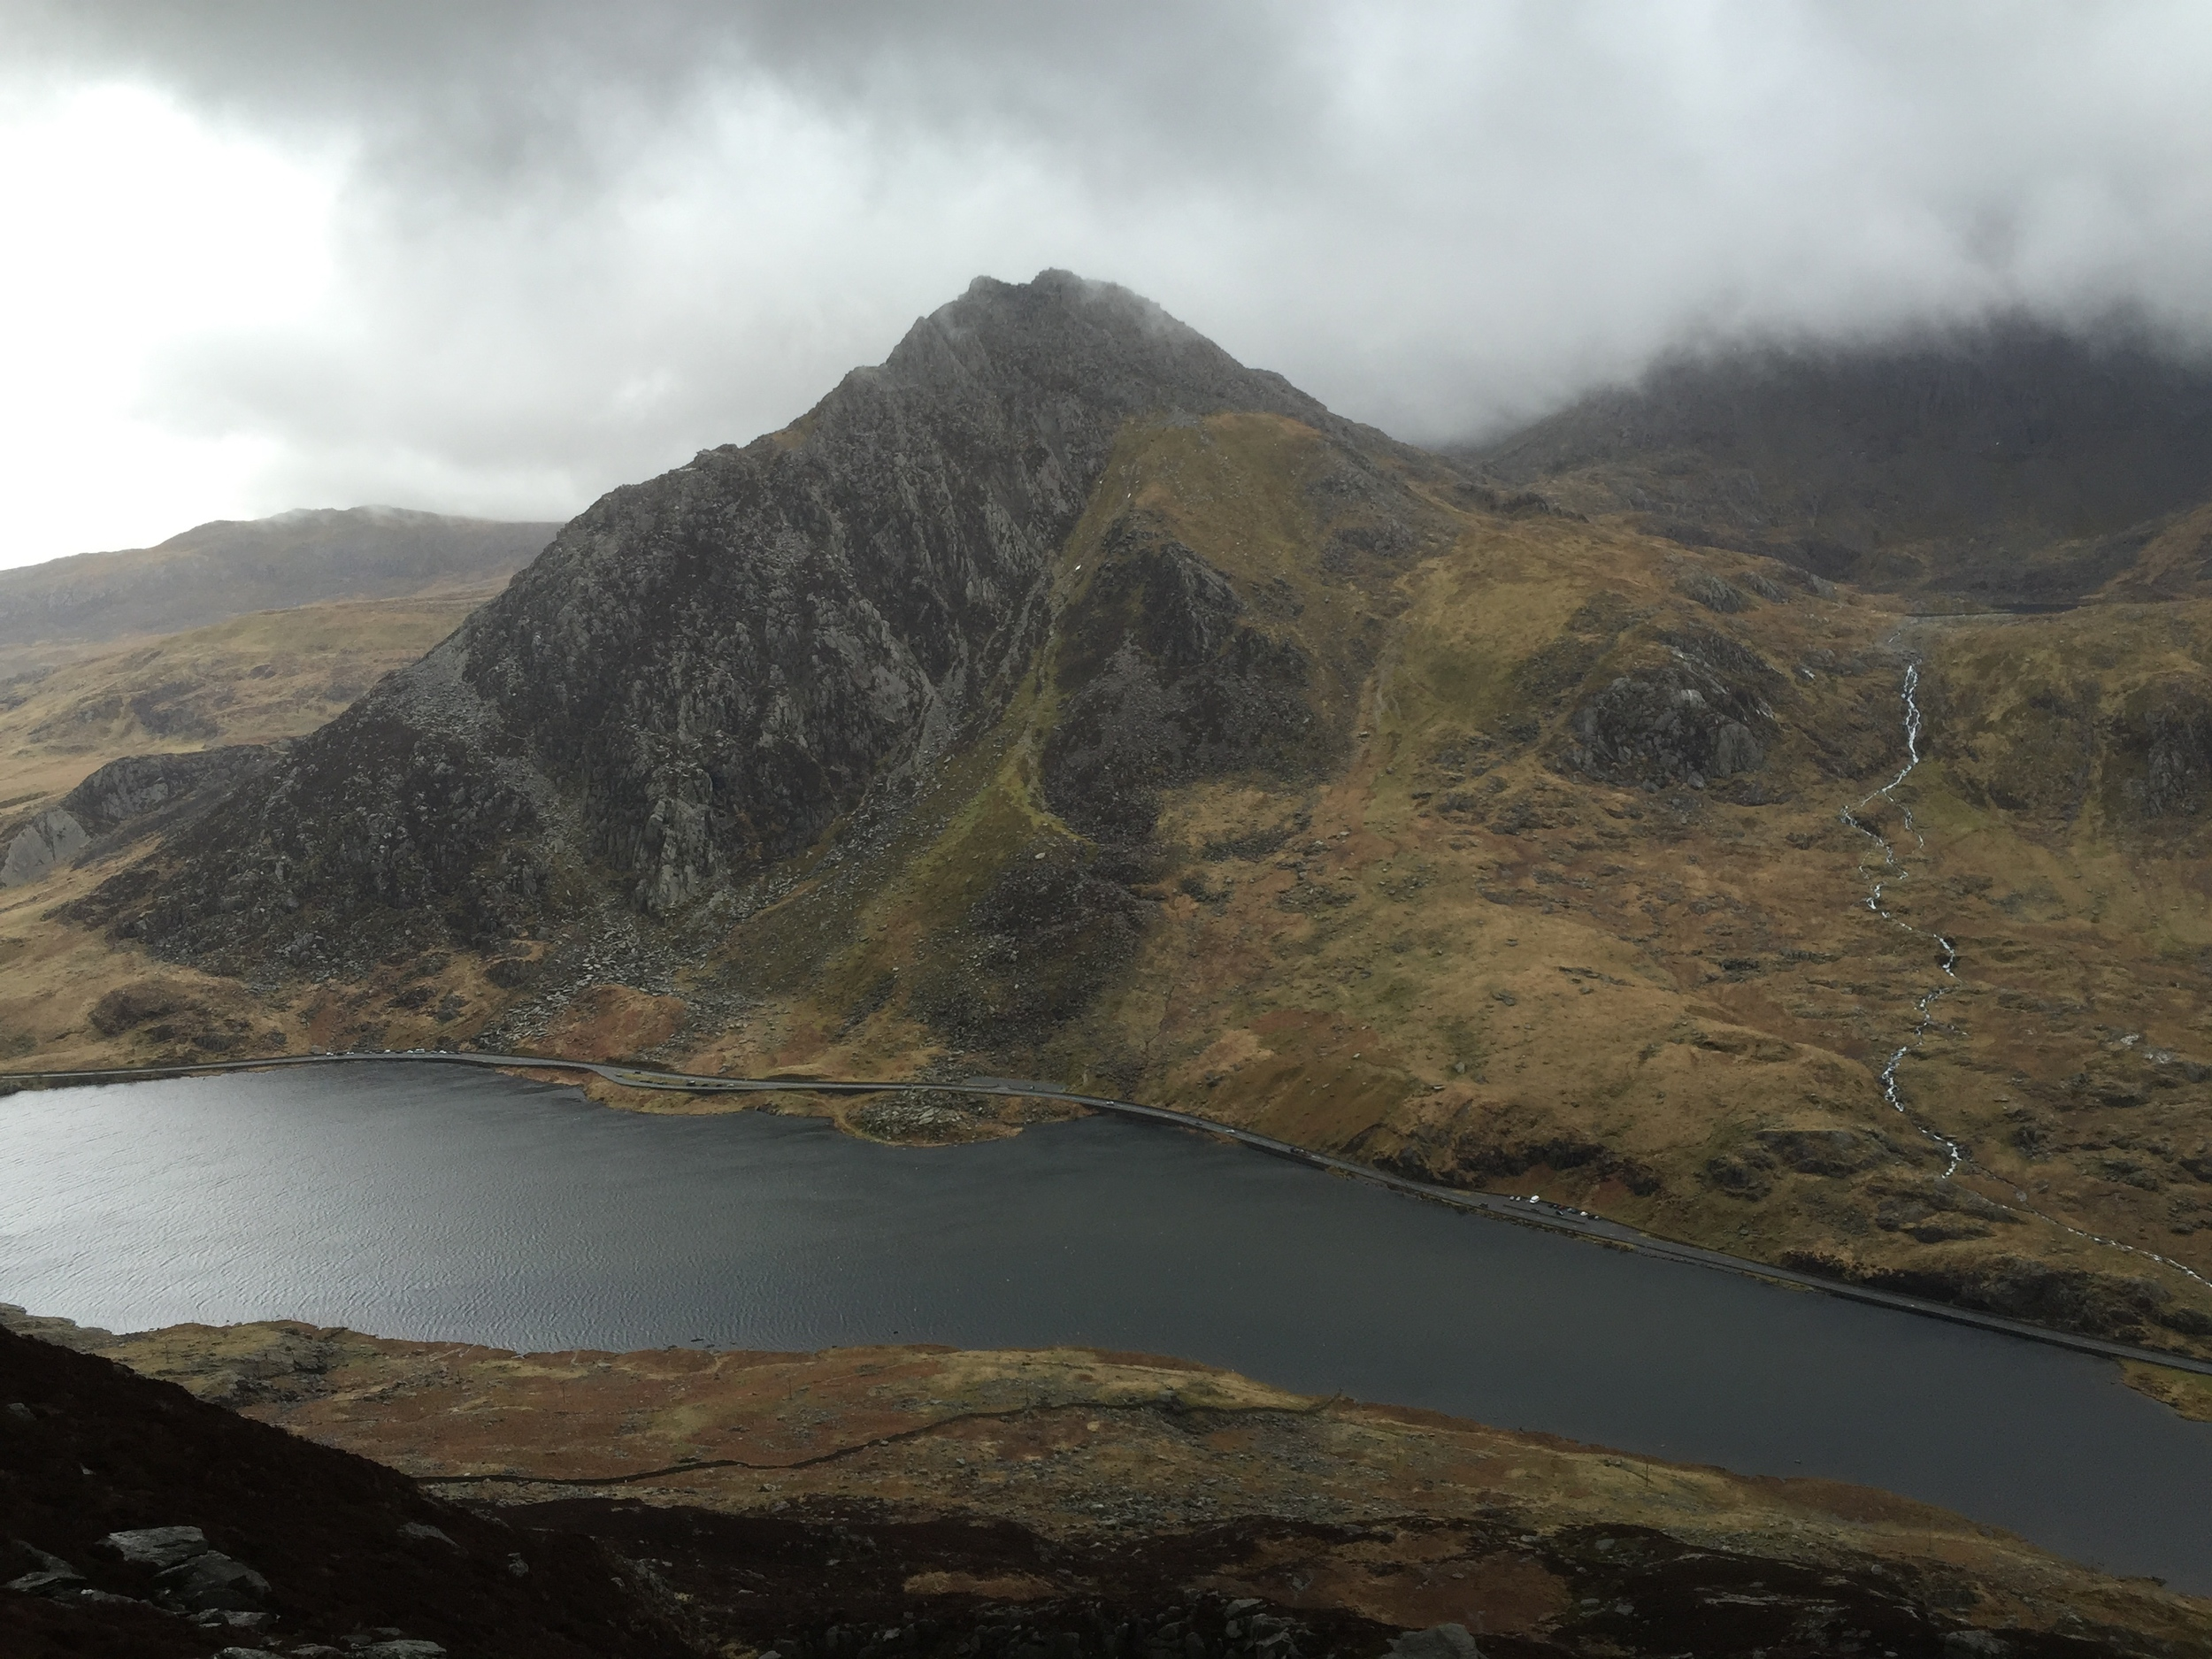 the view of tryfan across the valley